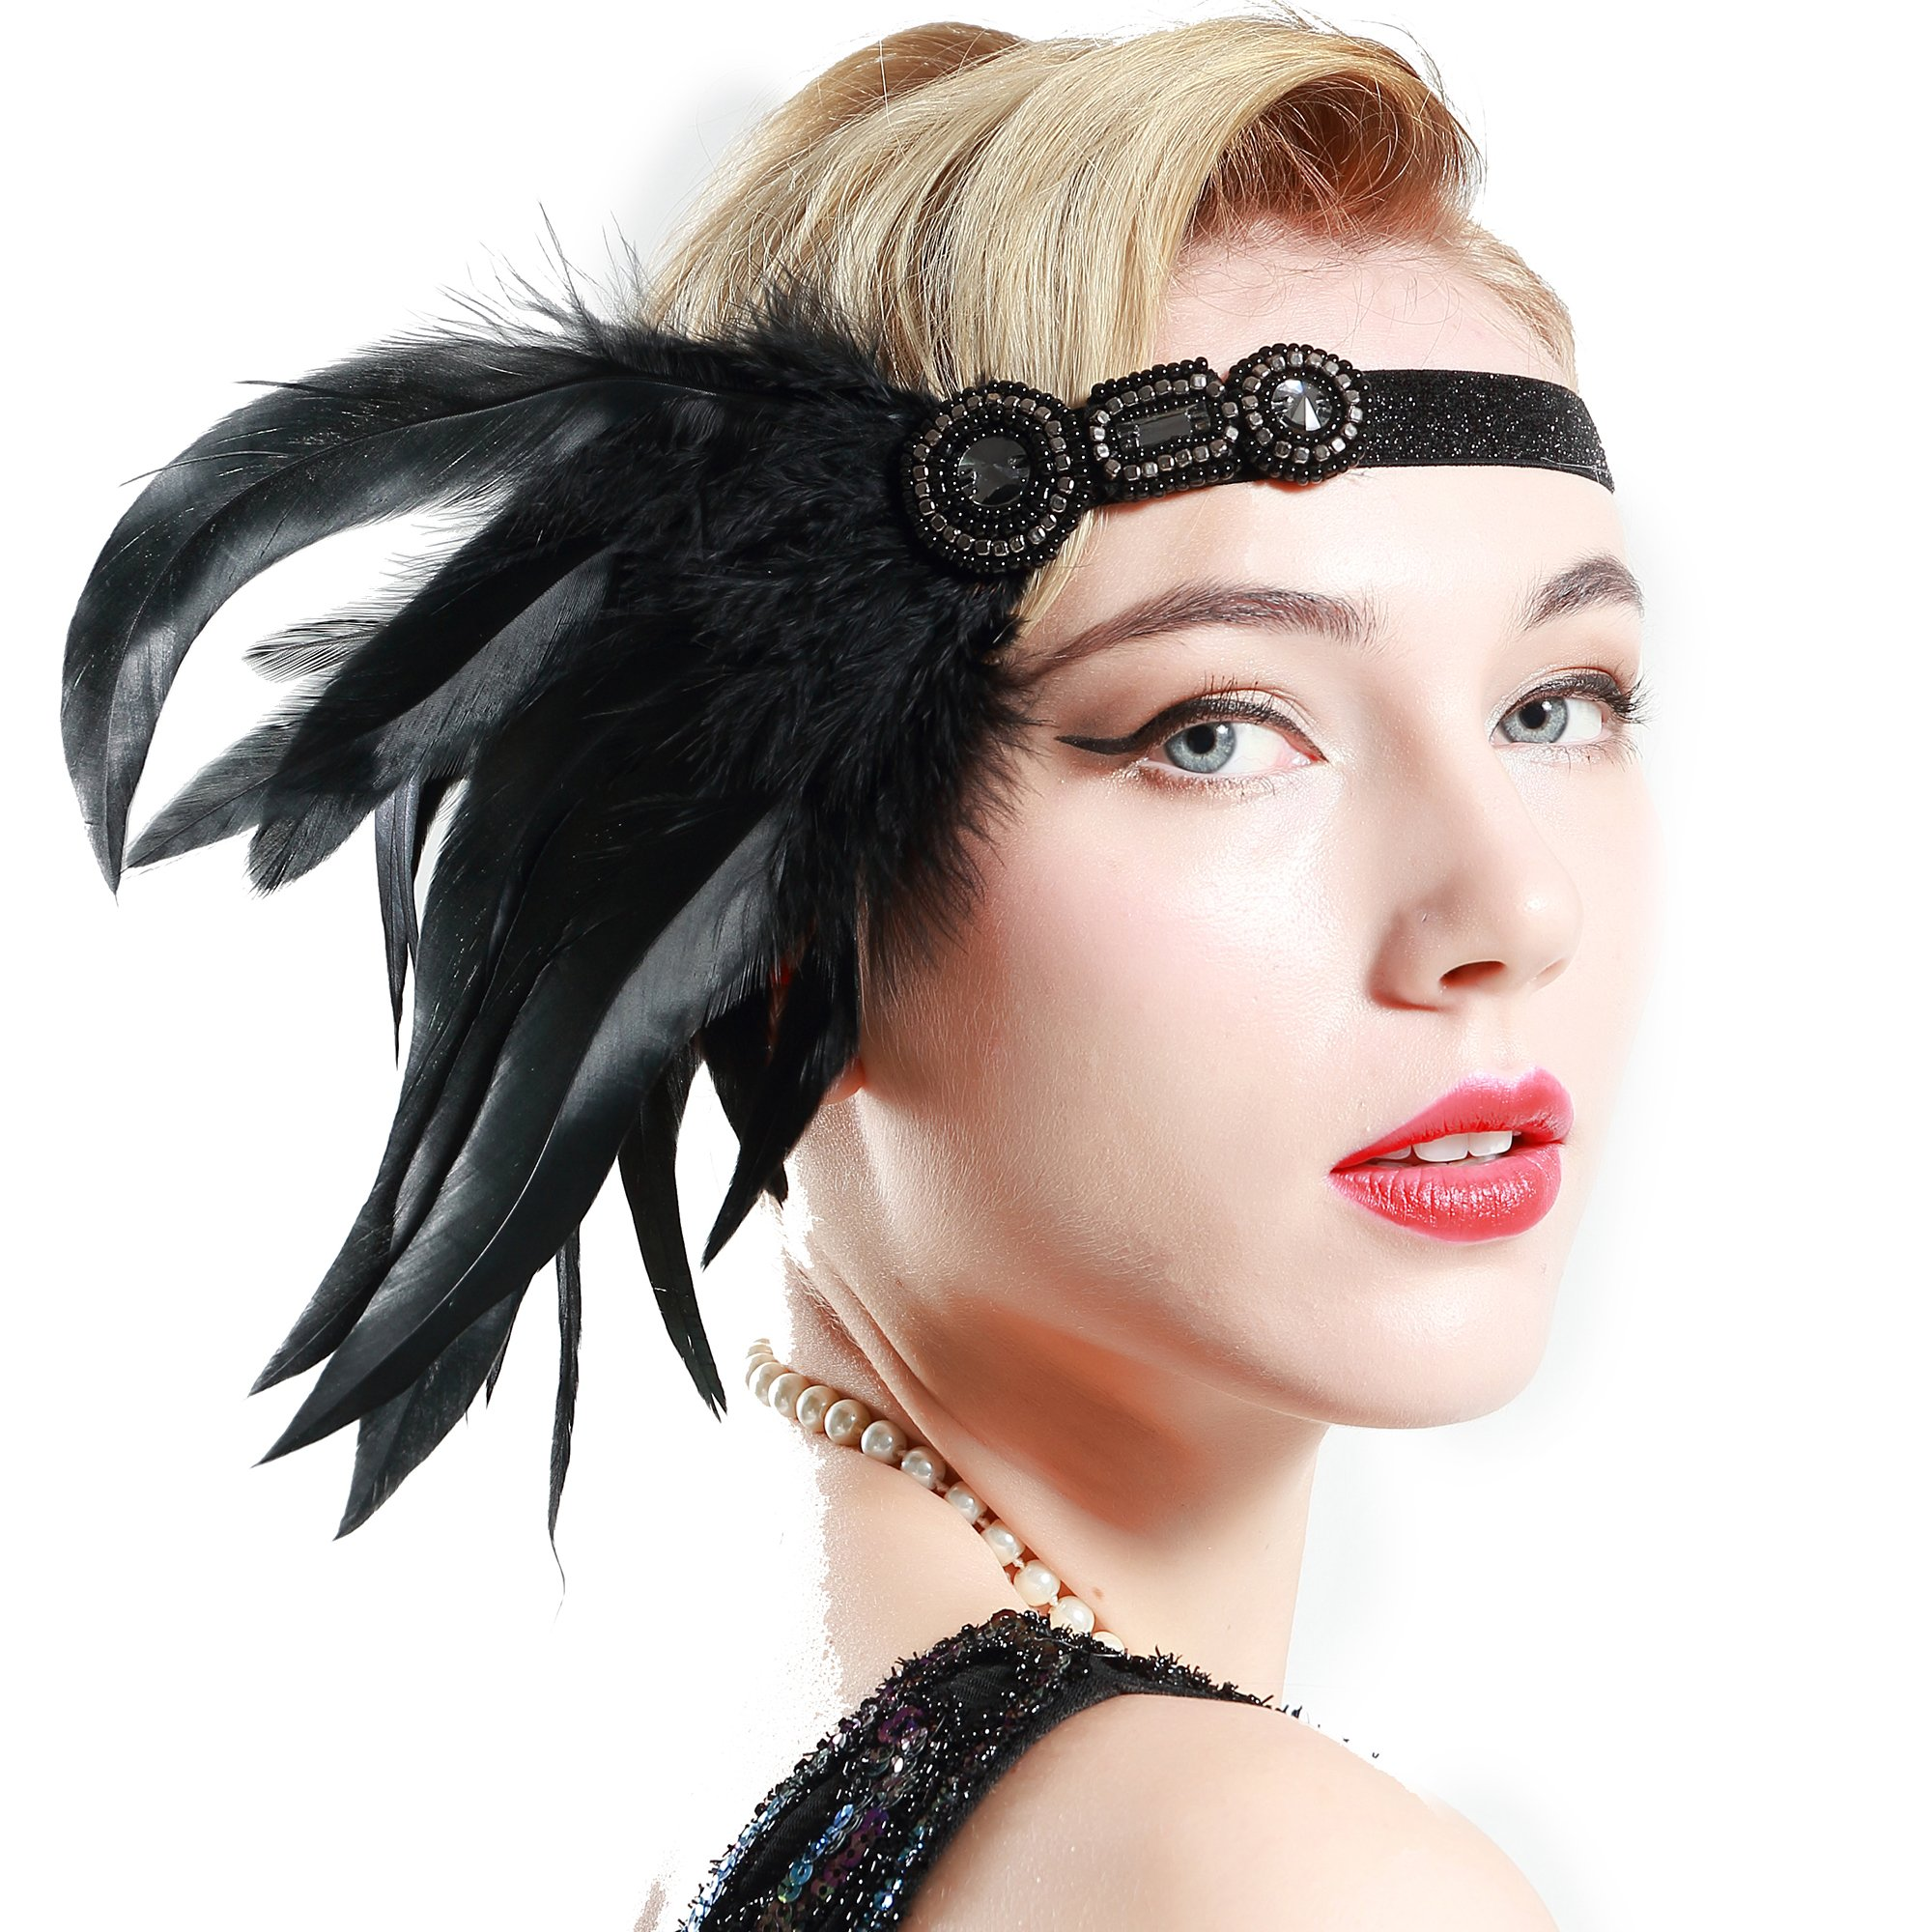 BABEYOND 1920s Flapper Headpiece Roaring 20s Great Gatsby Headband Black Feather Headband 1920s Flapper Gatsby Hair Accessories (Black-1)